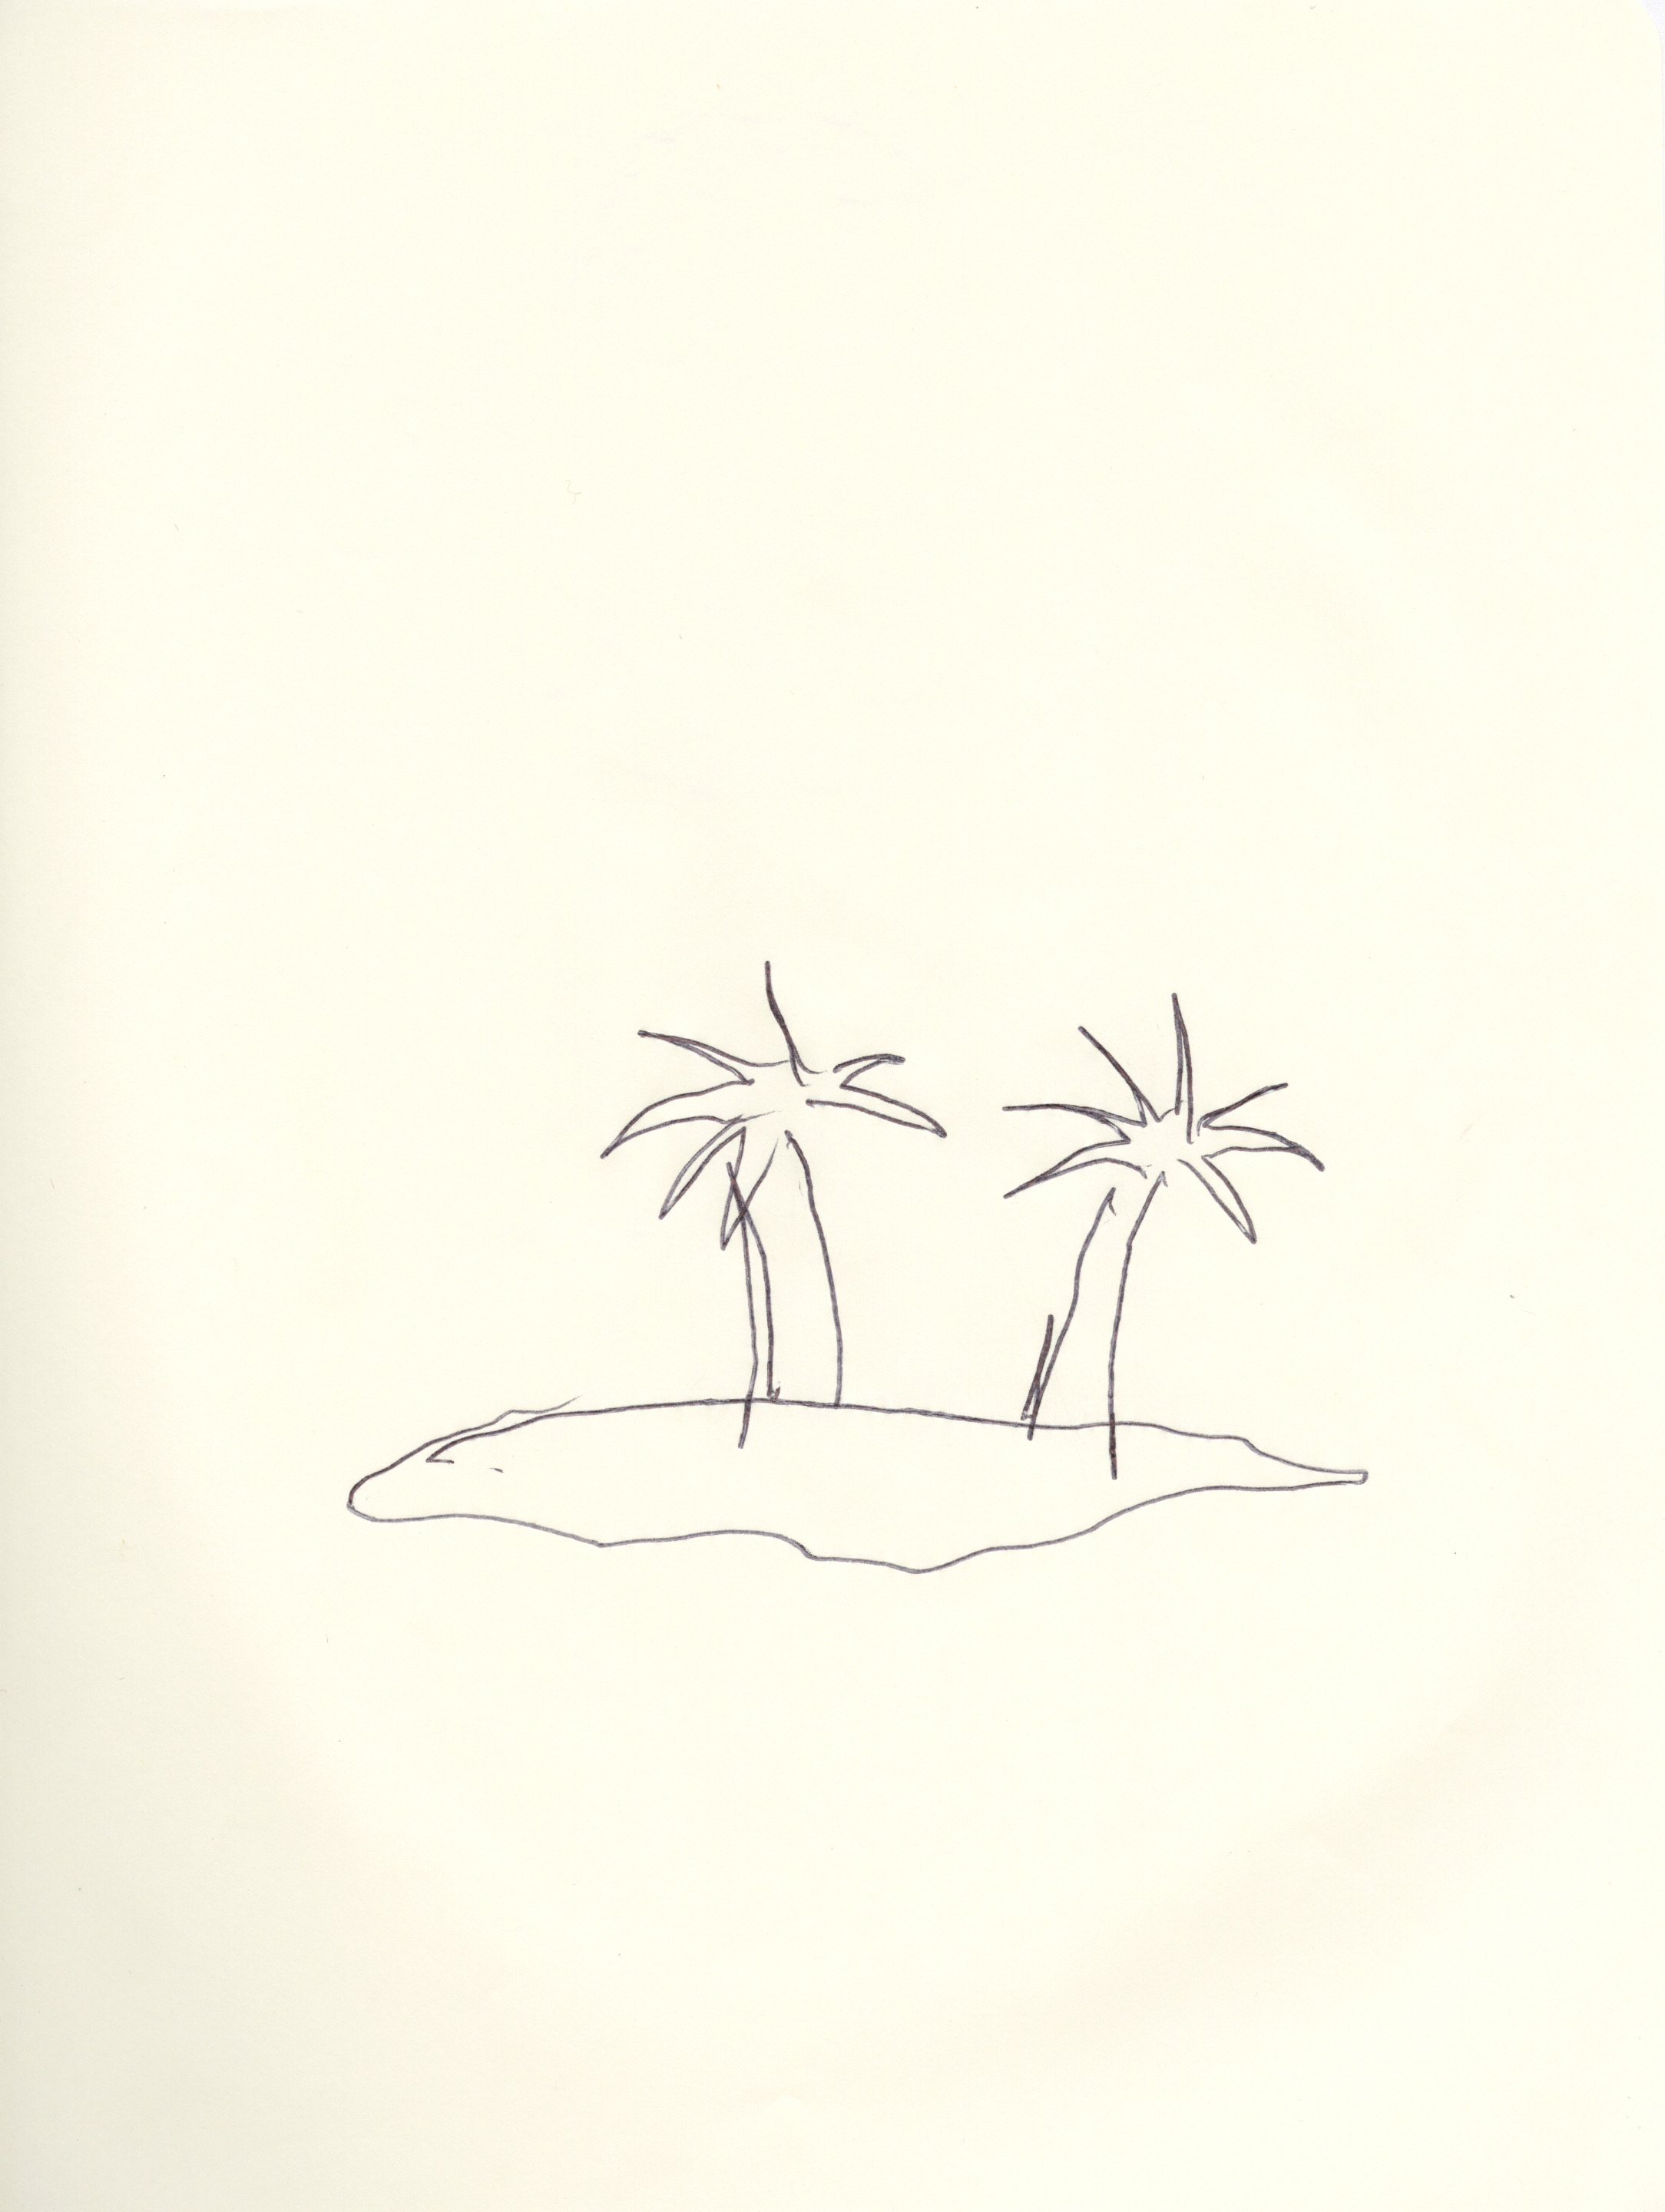 FF 03 || Gossiaux - Tactile Drawing 1 - Island.jpeg